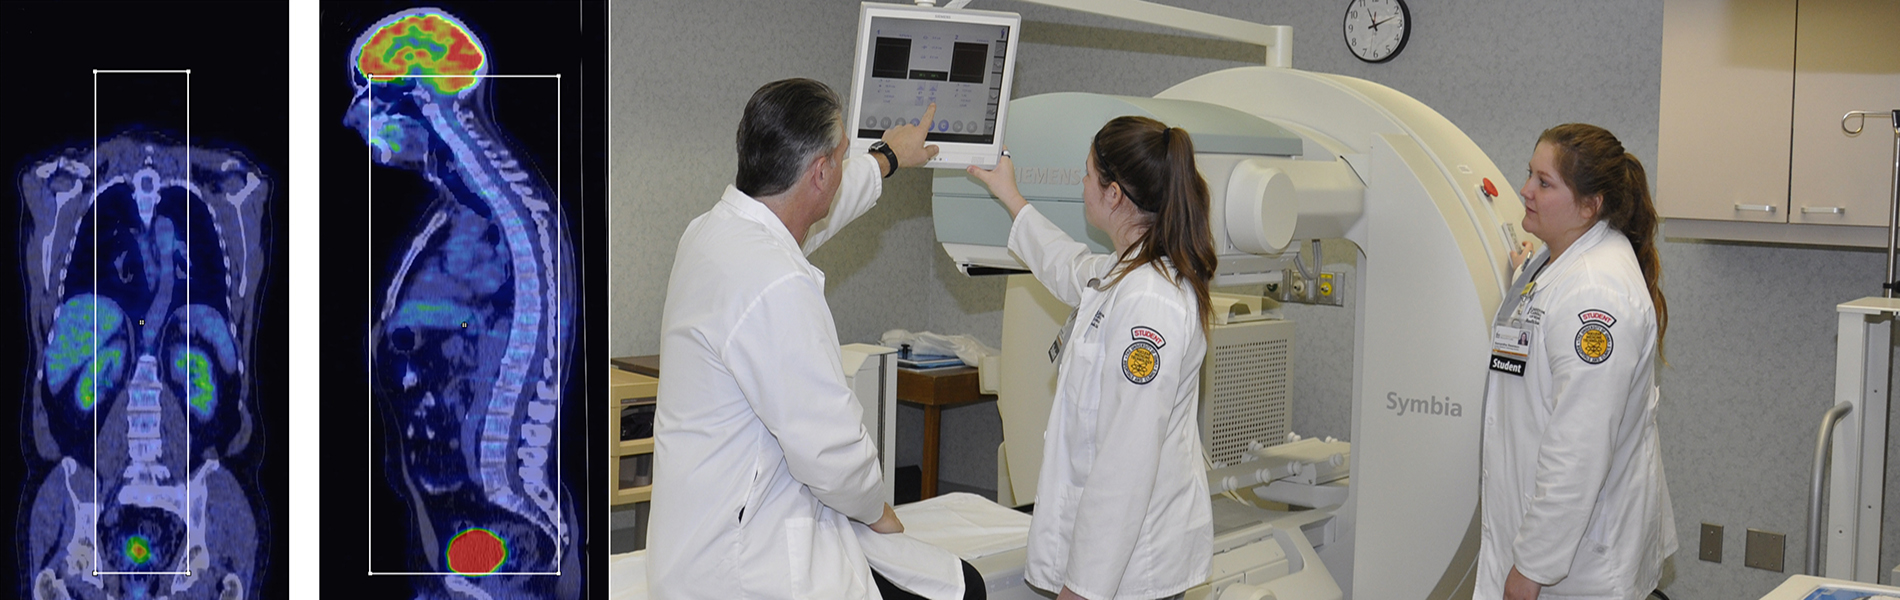 Nuclear Medicine Technology Program